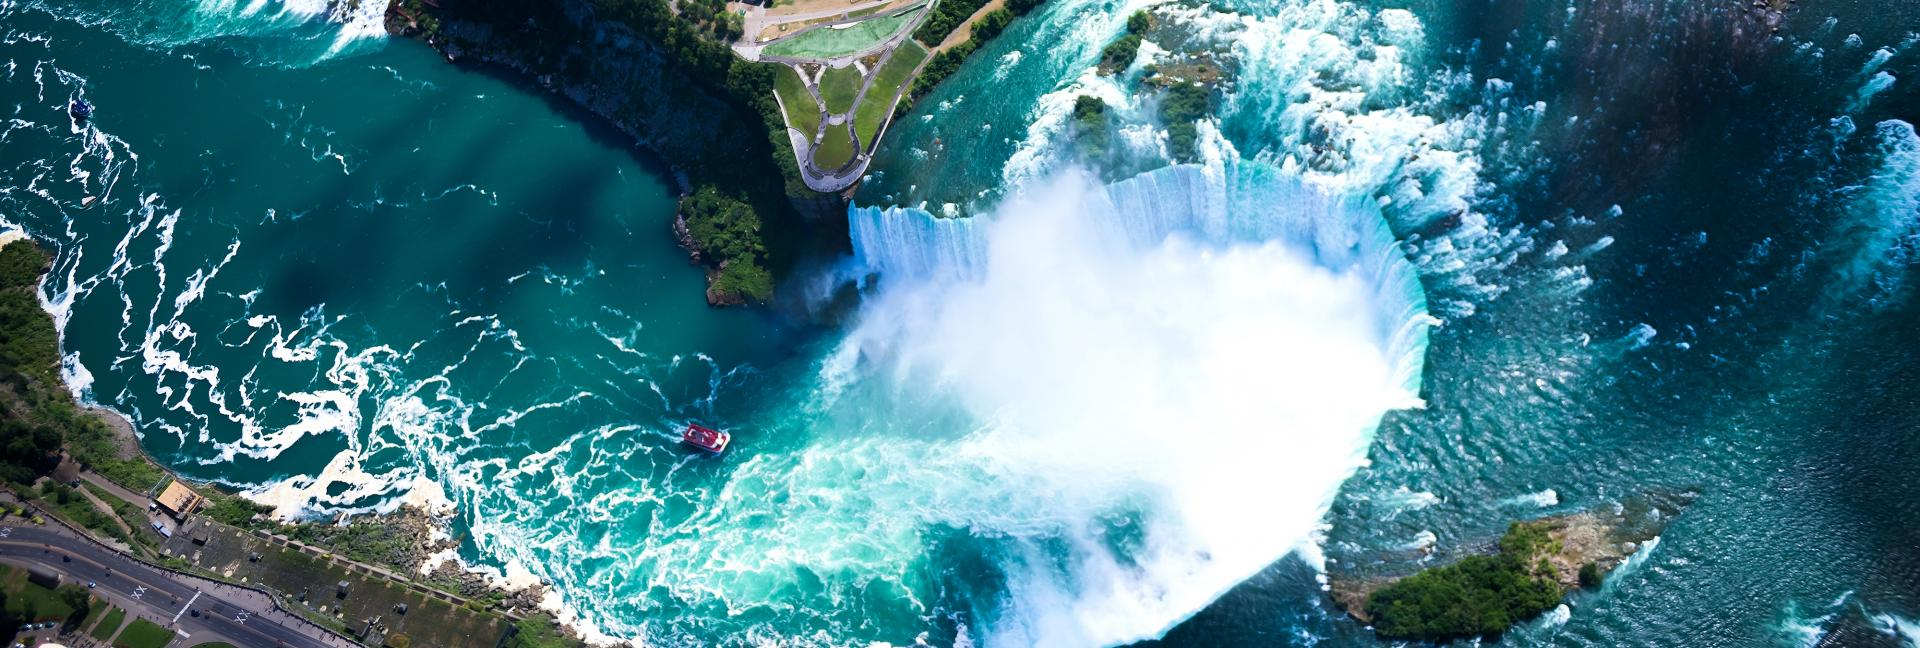 Aerial view of Niagara Falls